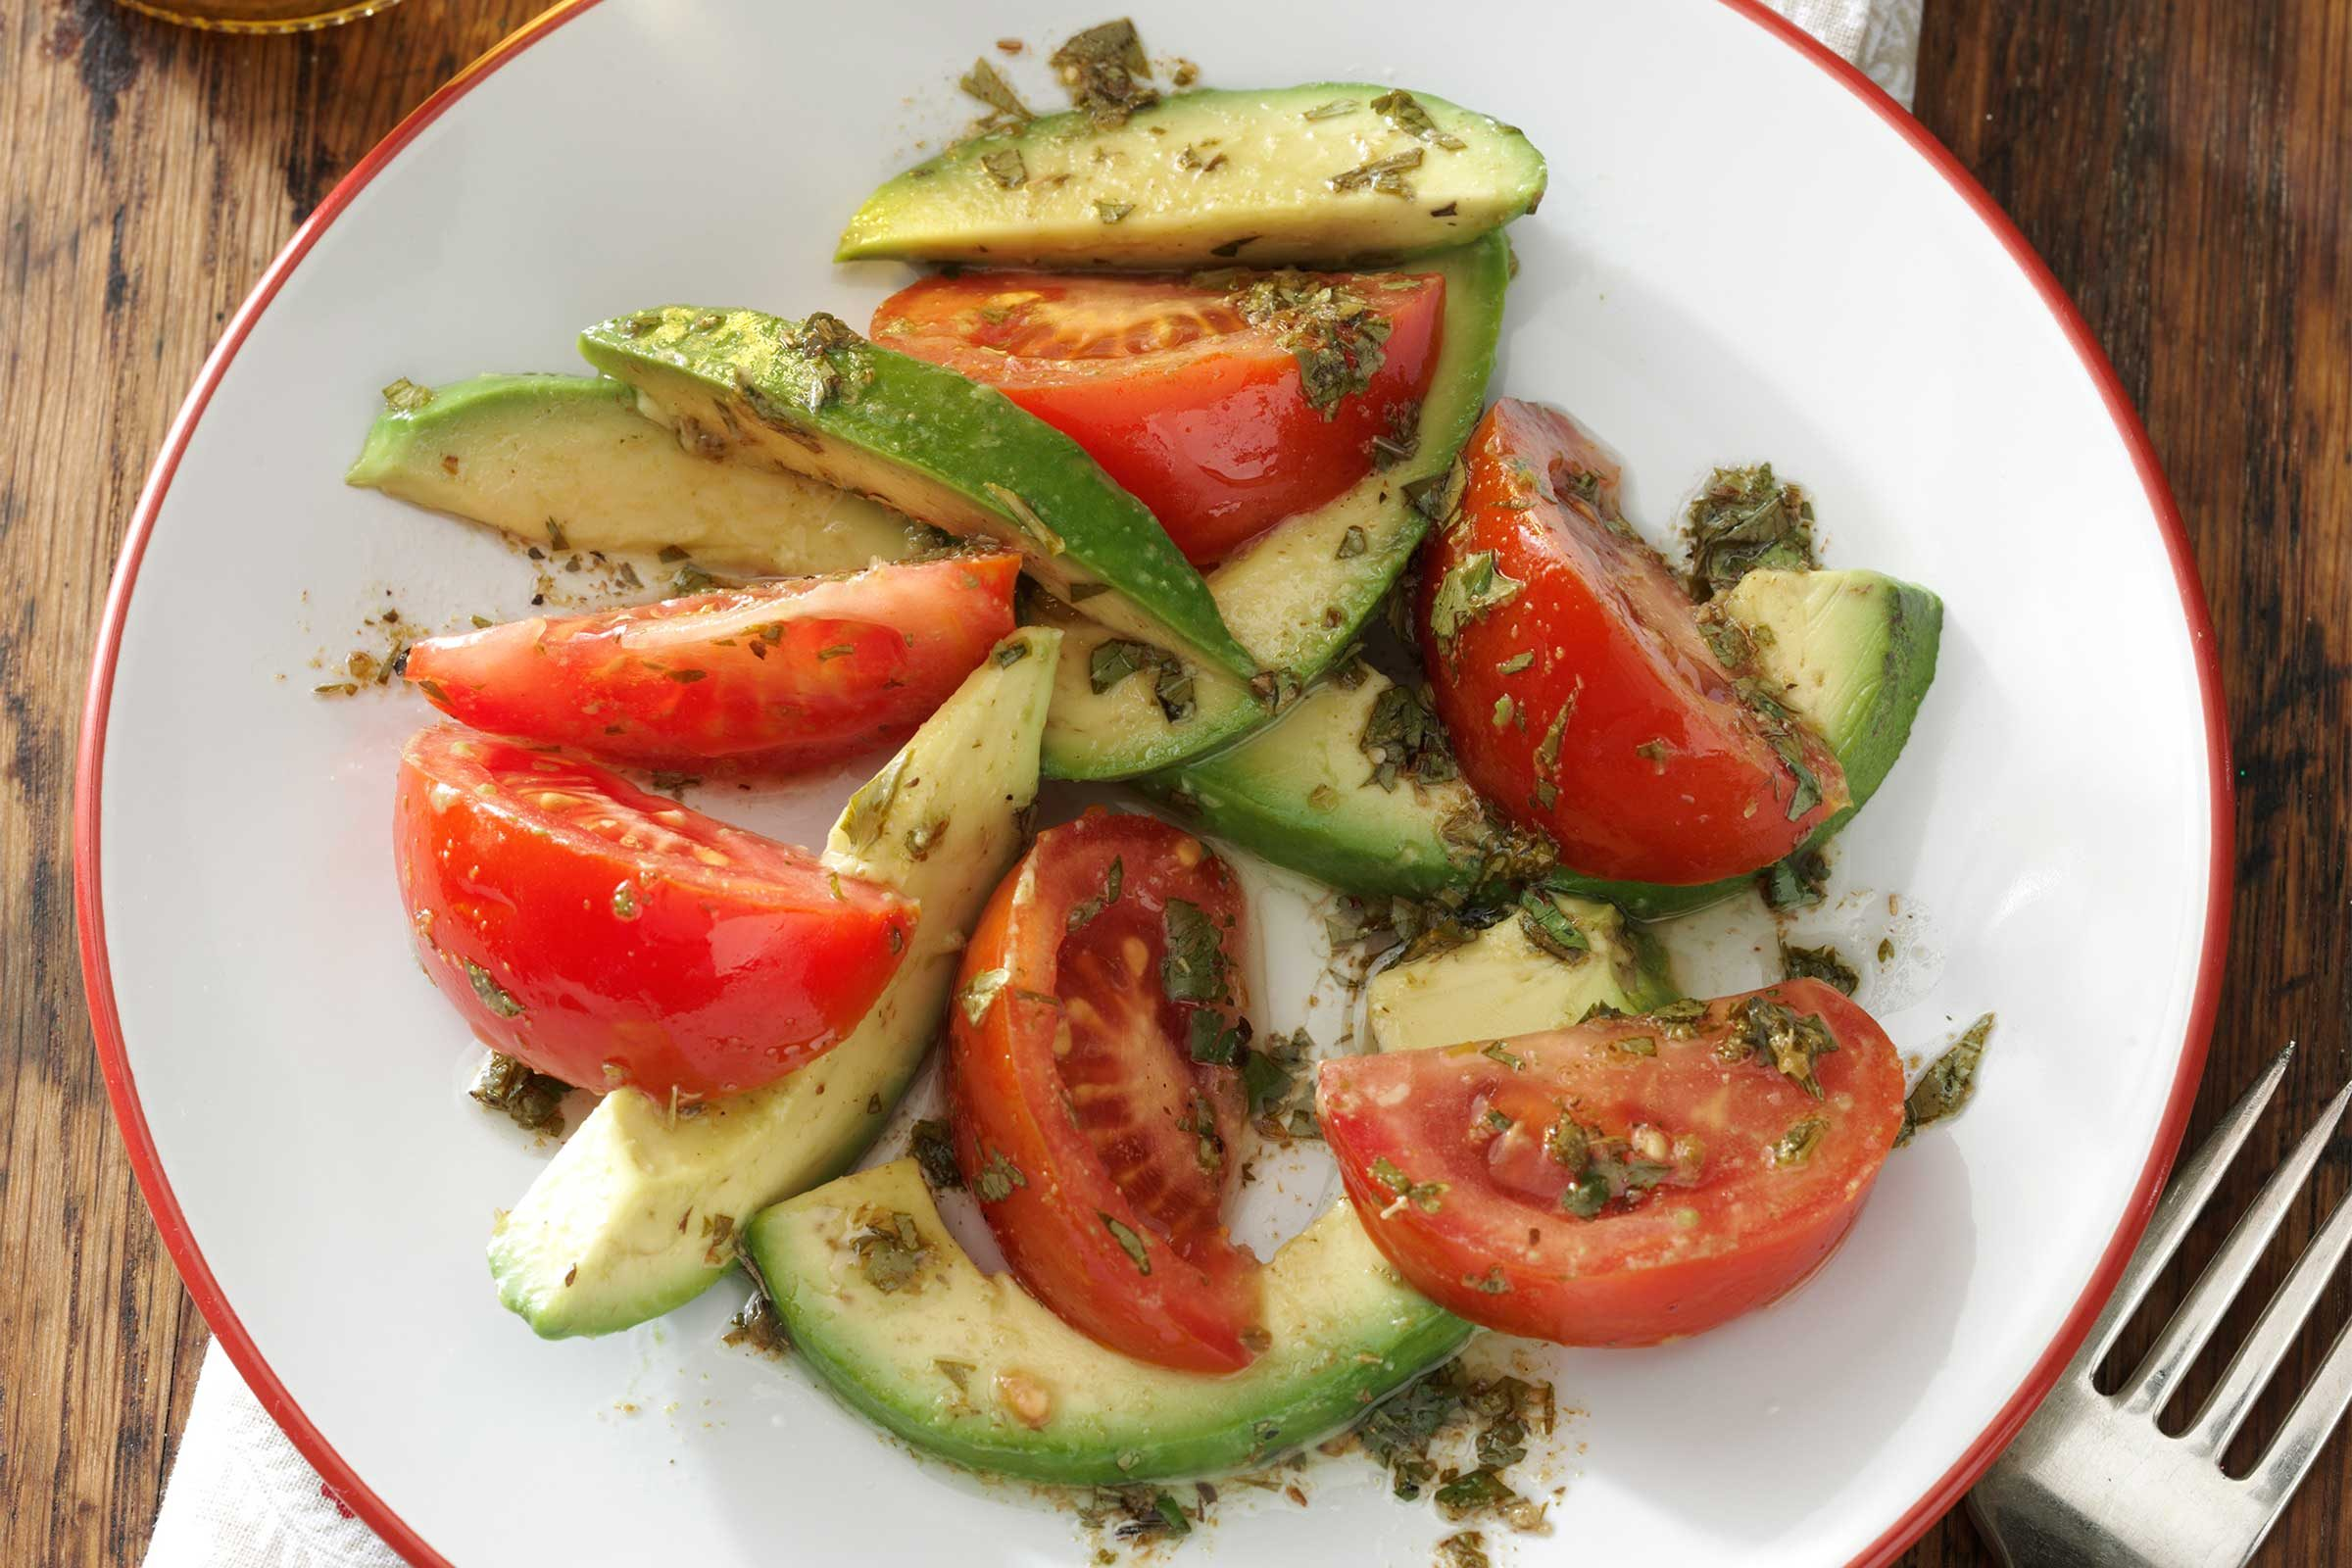 Tomato-and-Avocado-Salad